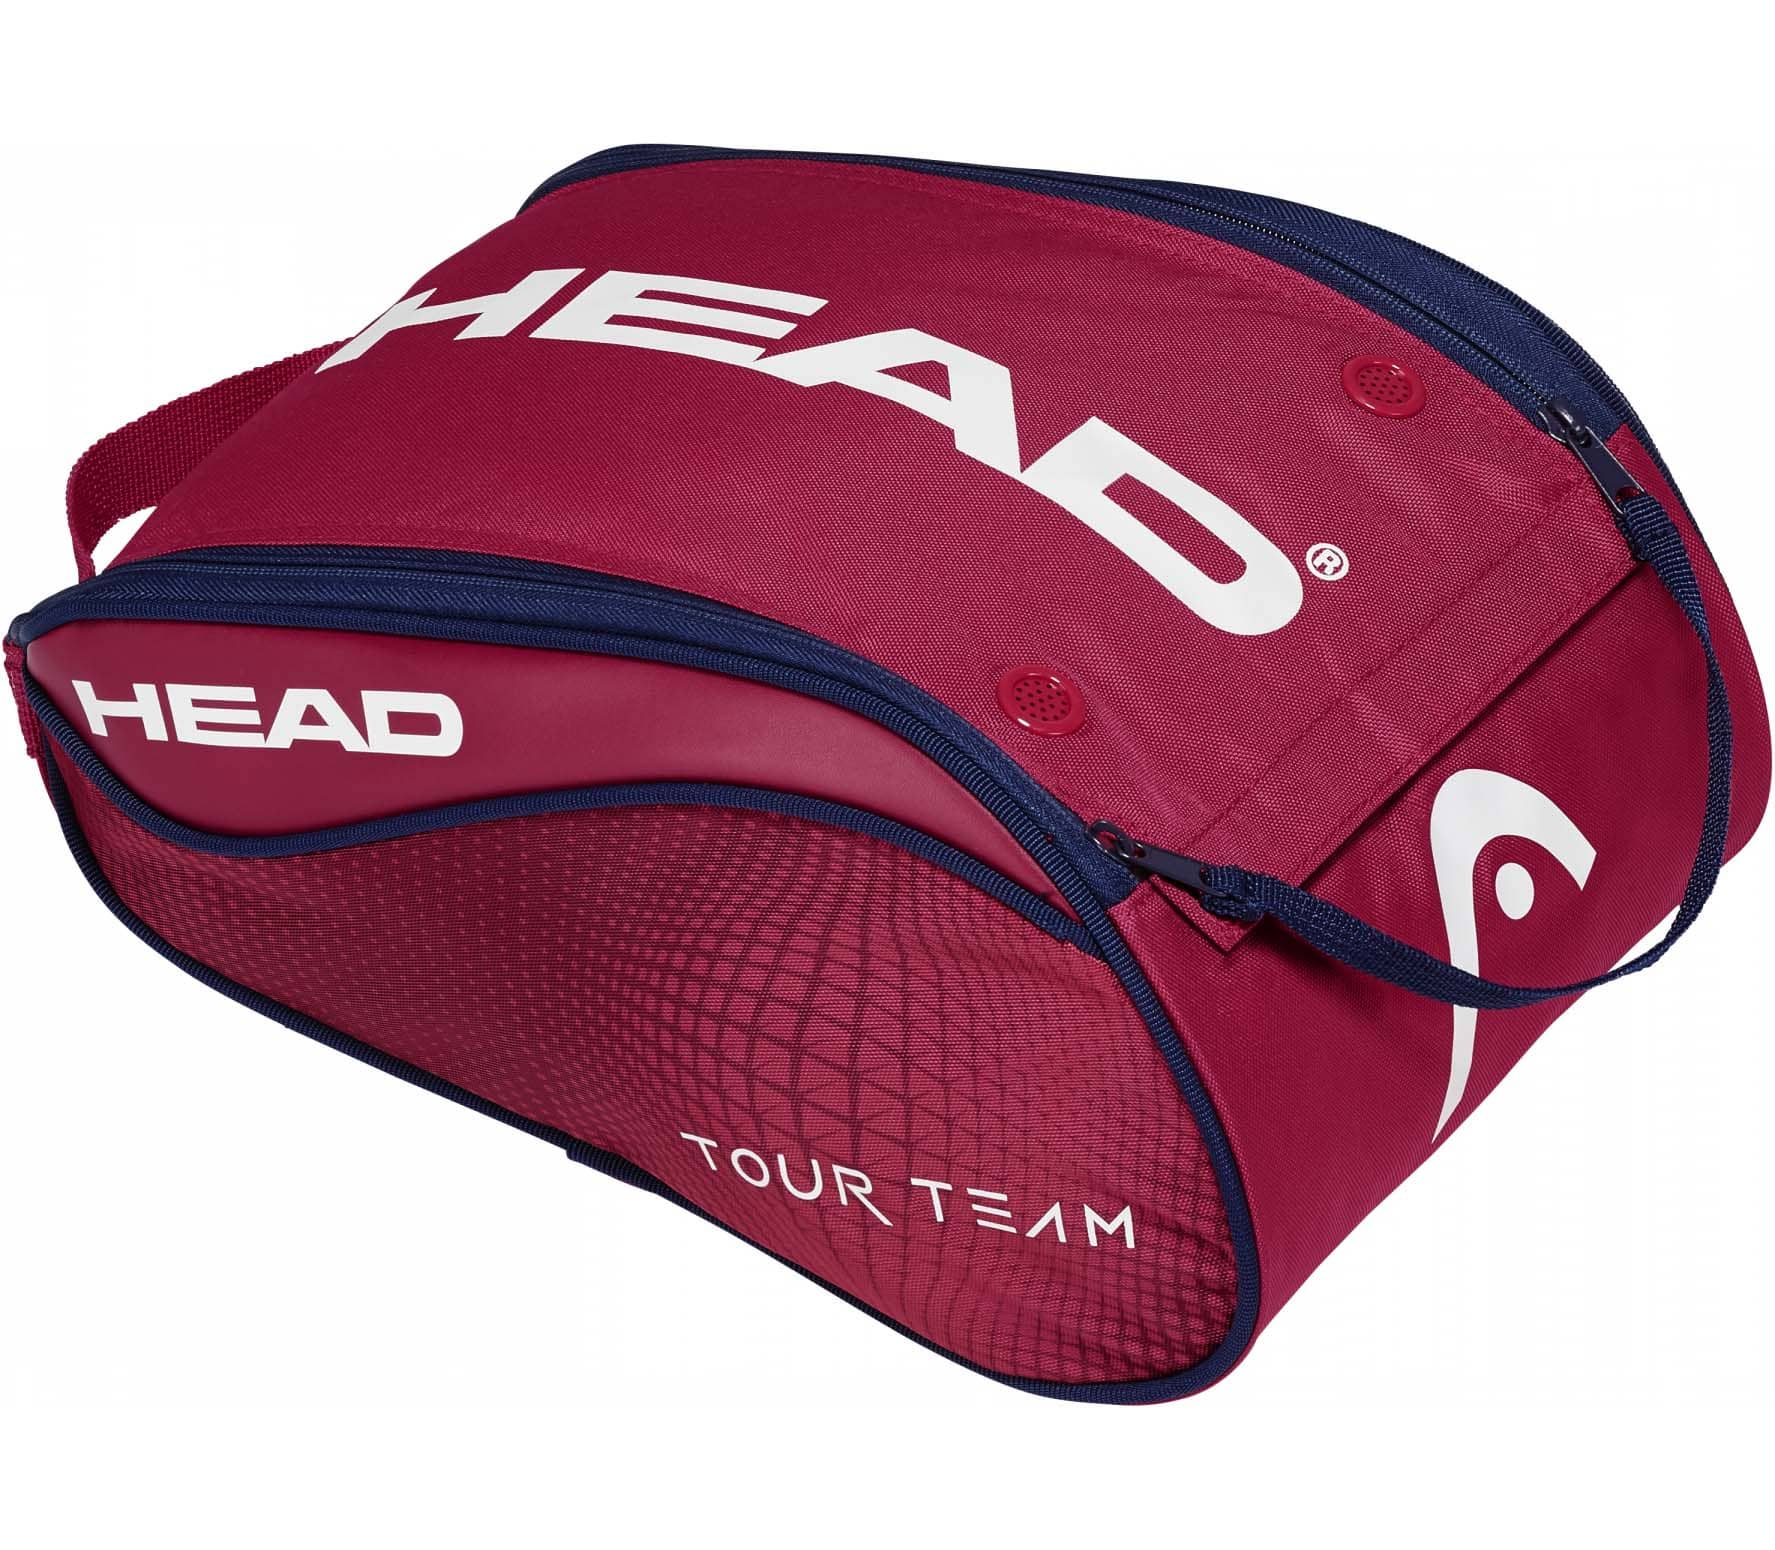 Head - Tour Team Shoe Bag tennis bag (red)